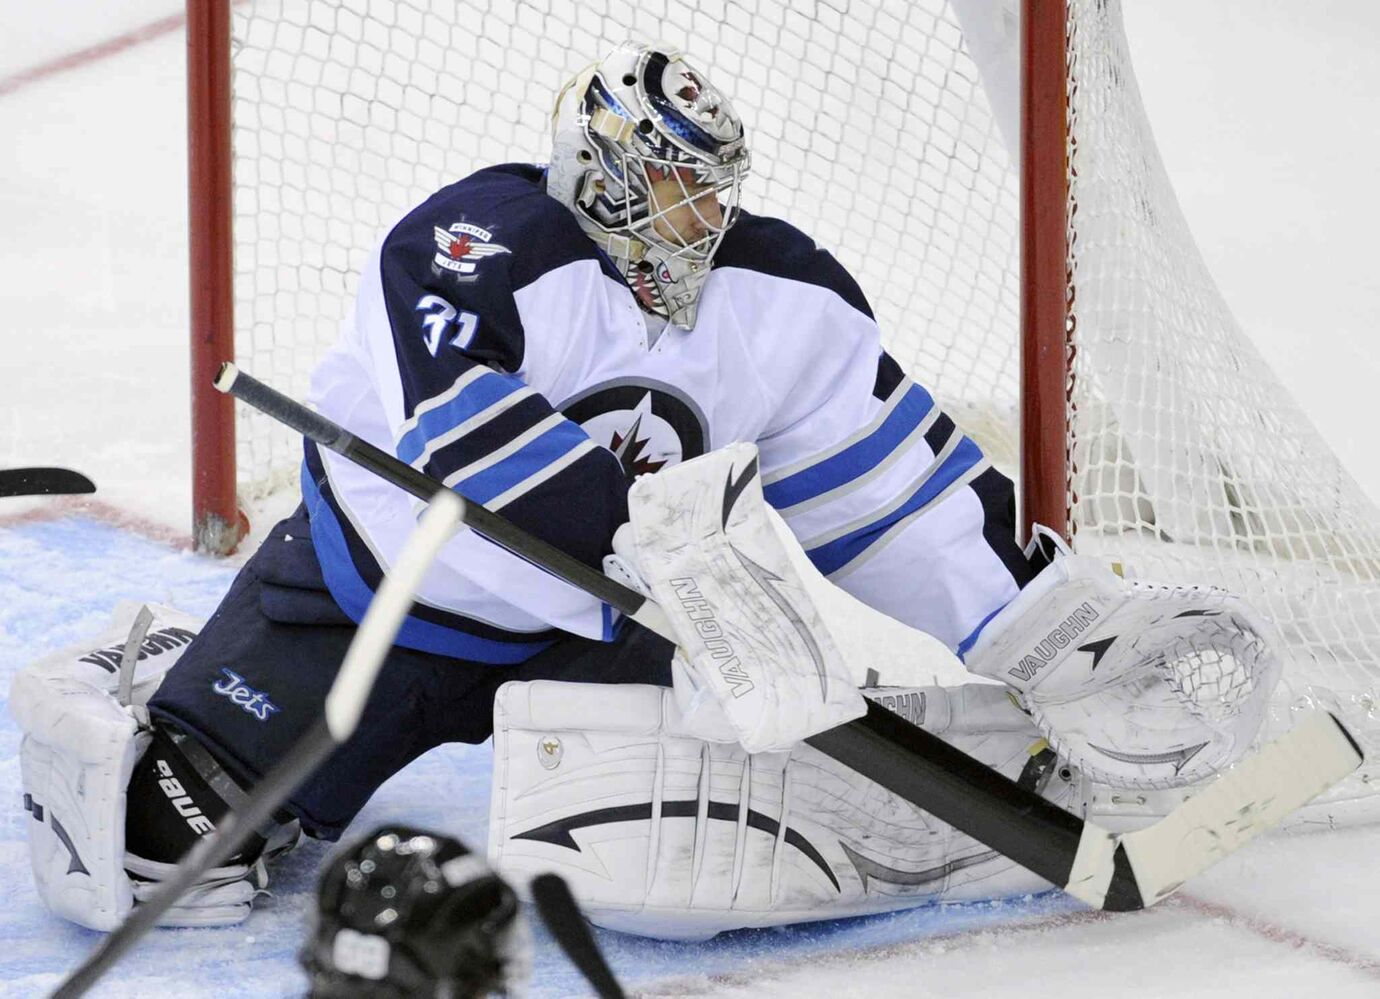 Winnipeg Jets goaltender Ondrej Pavelec makes a save during the third period. (BILL KOSTROUN / THE ASSOCIATED PRESS)